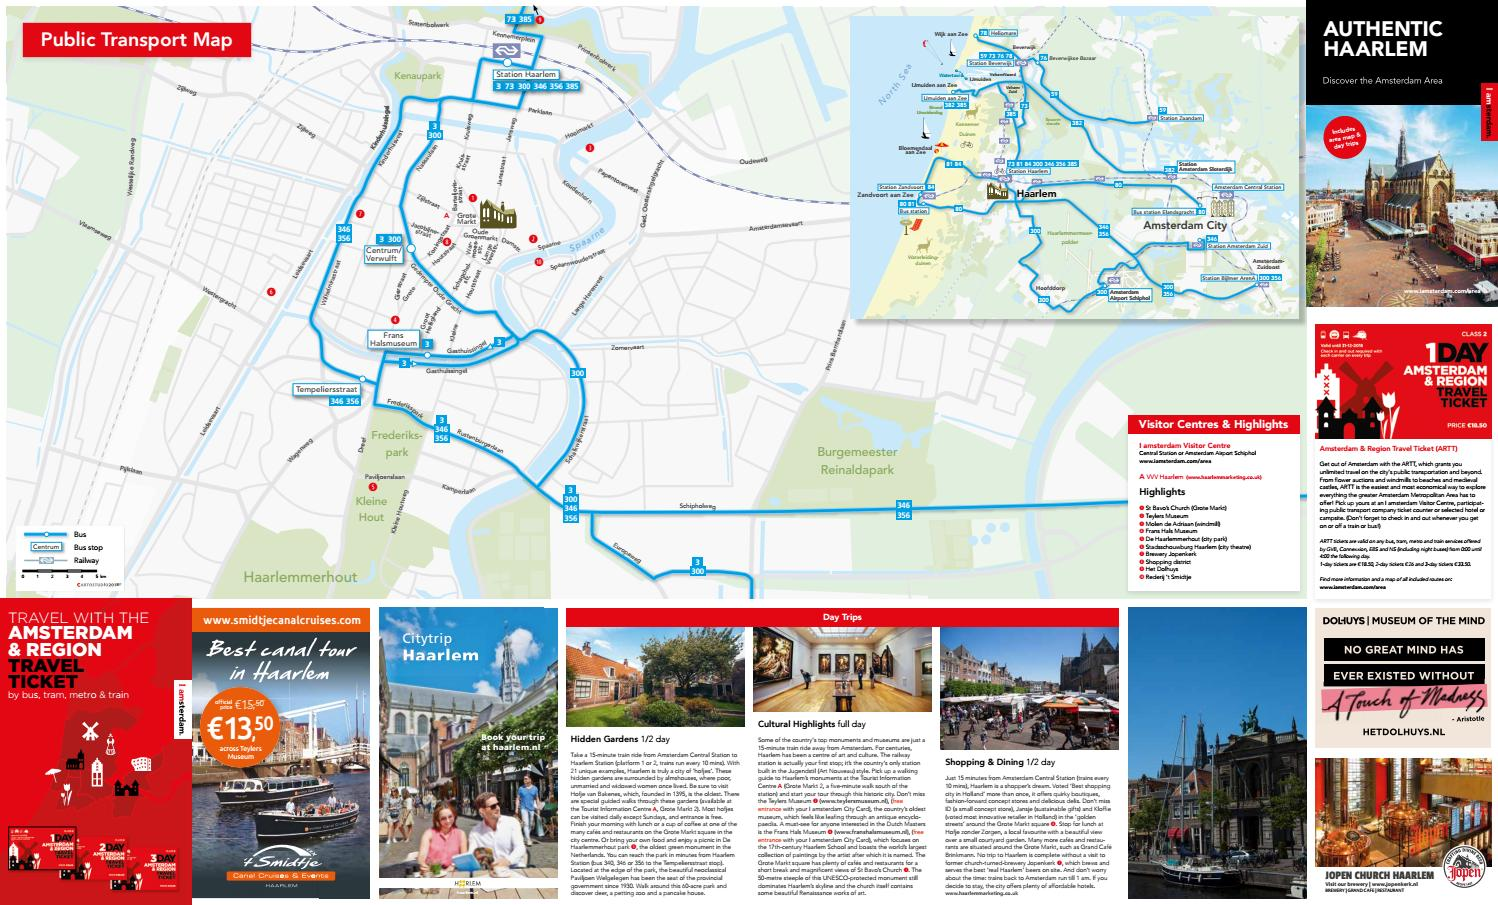 Haarlem map 2018 by Amsterdam Marketing - issuu